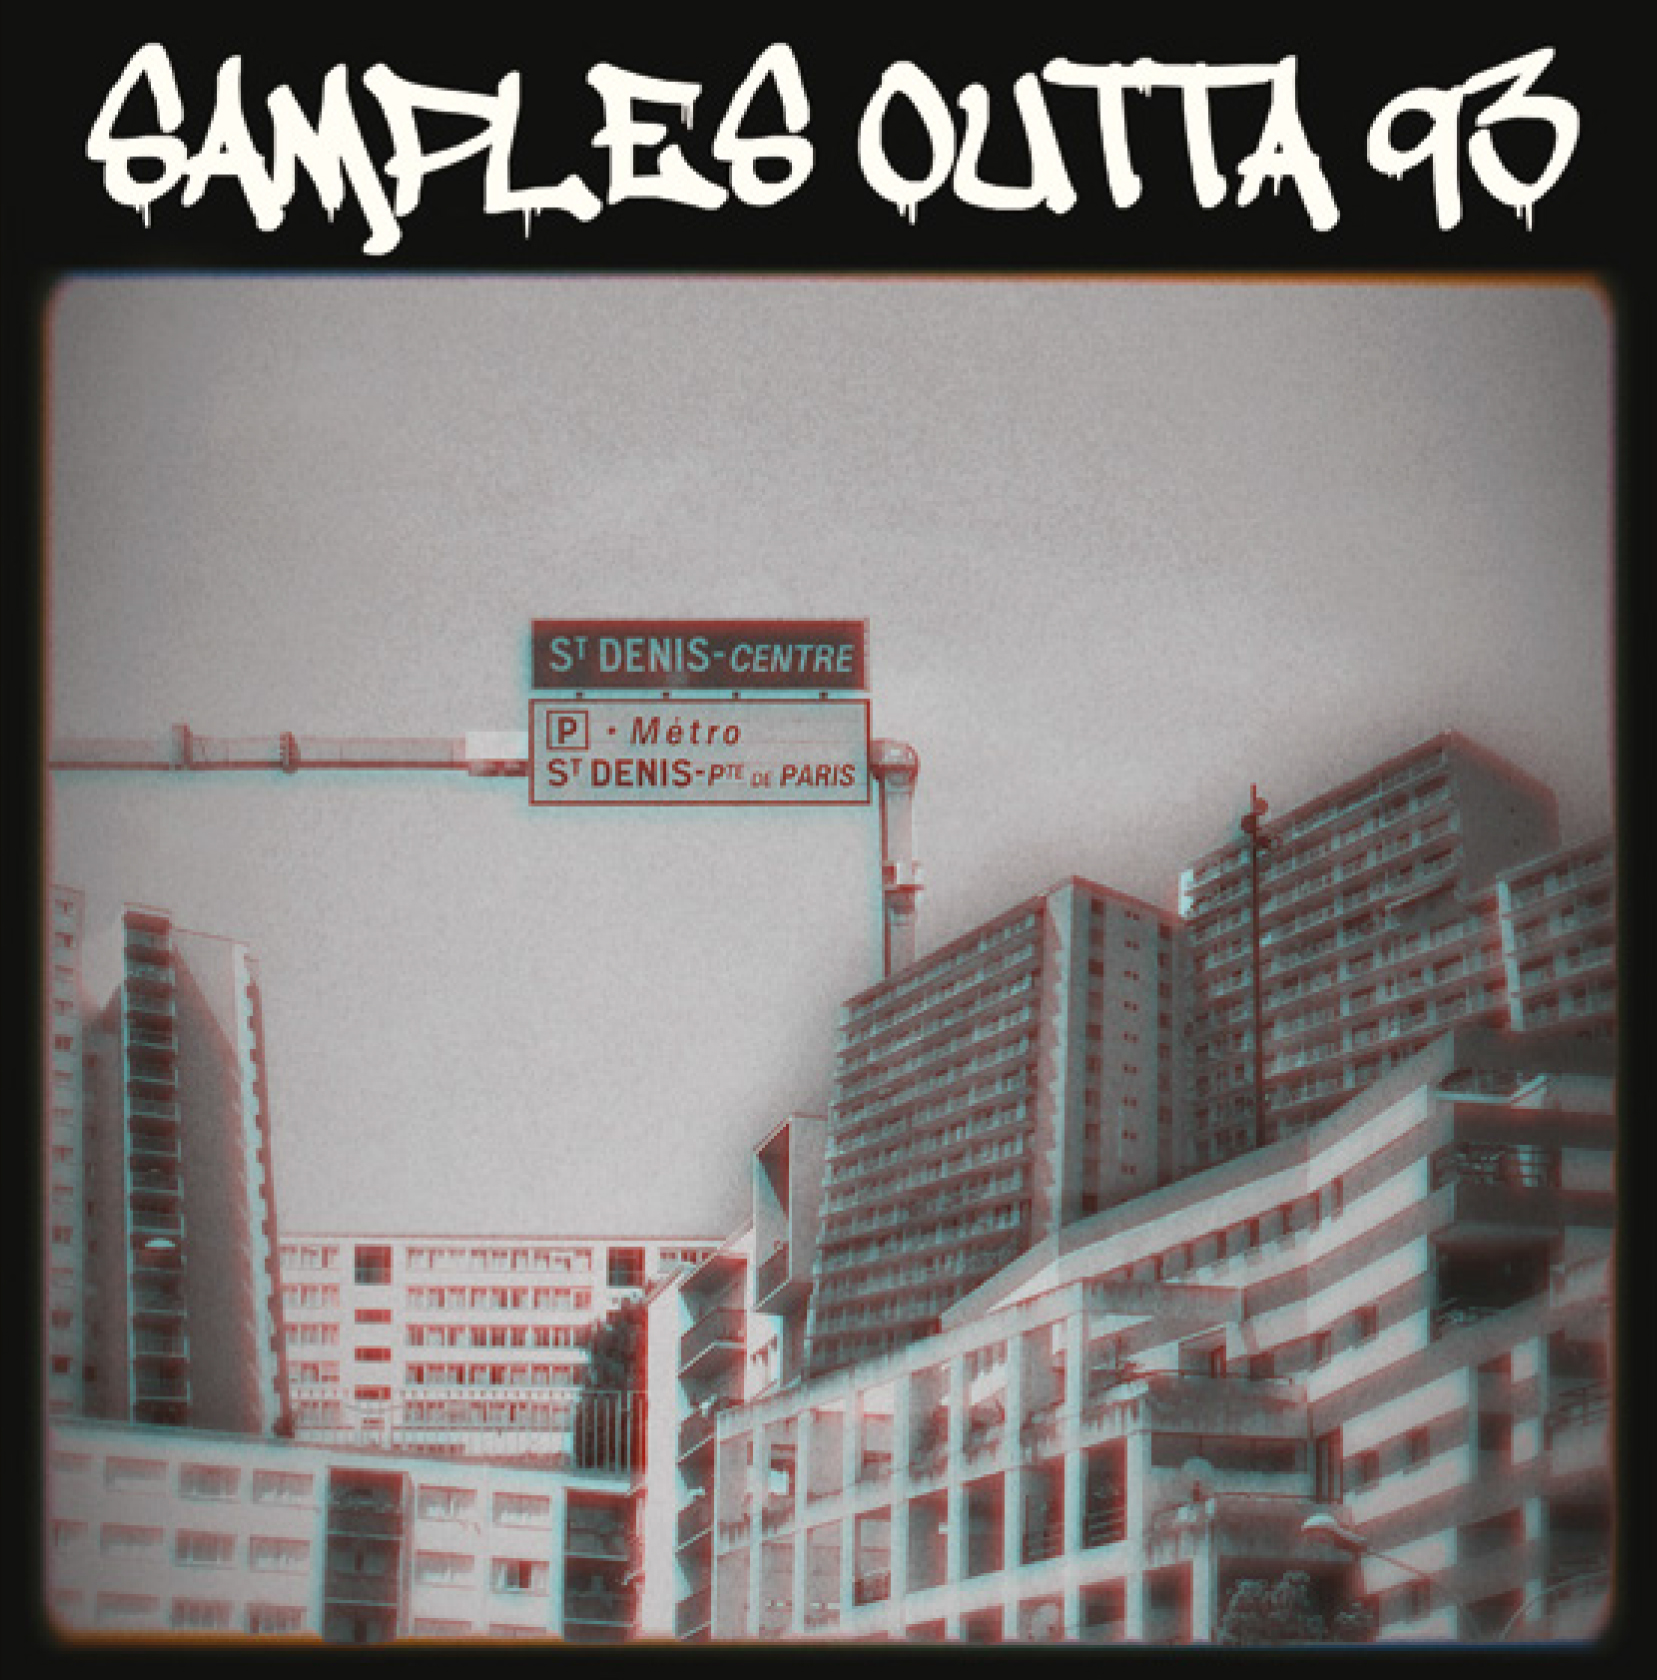 Samples-Outta-93